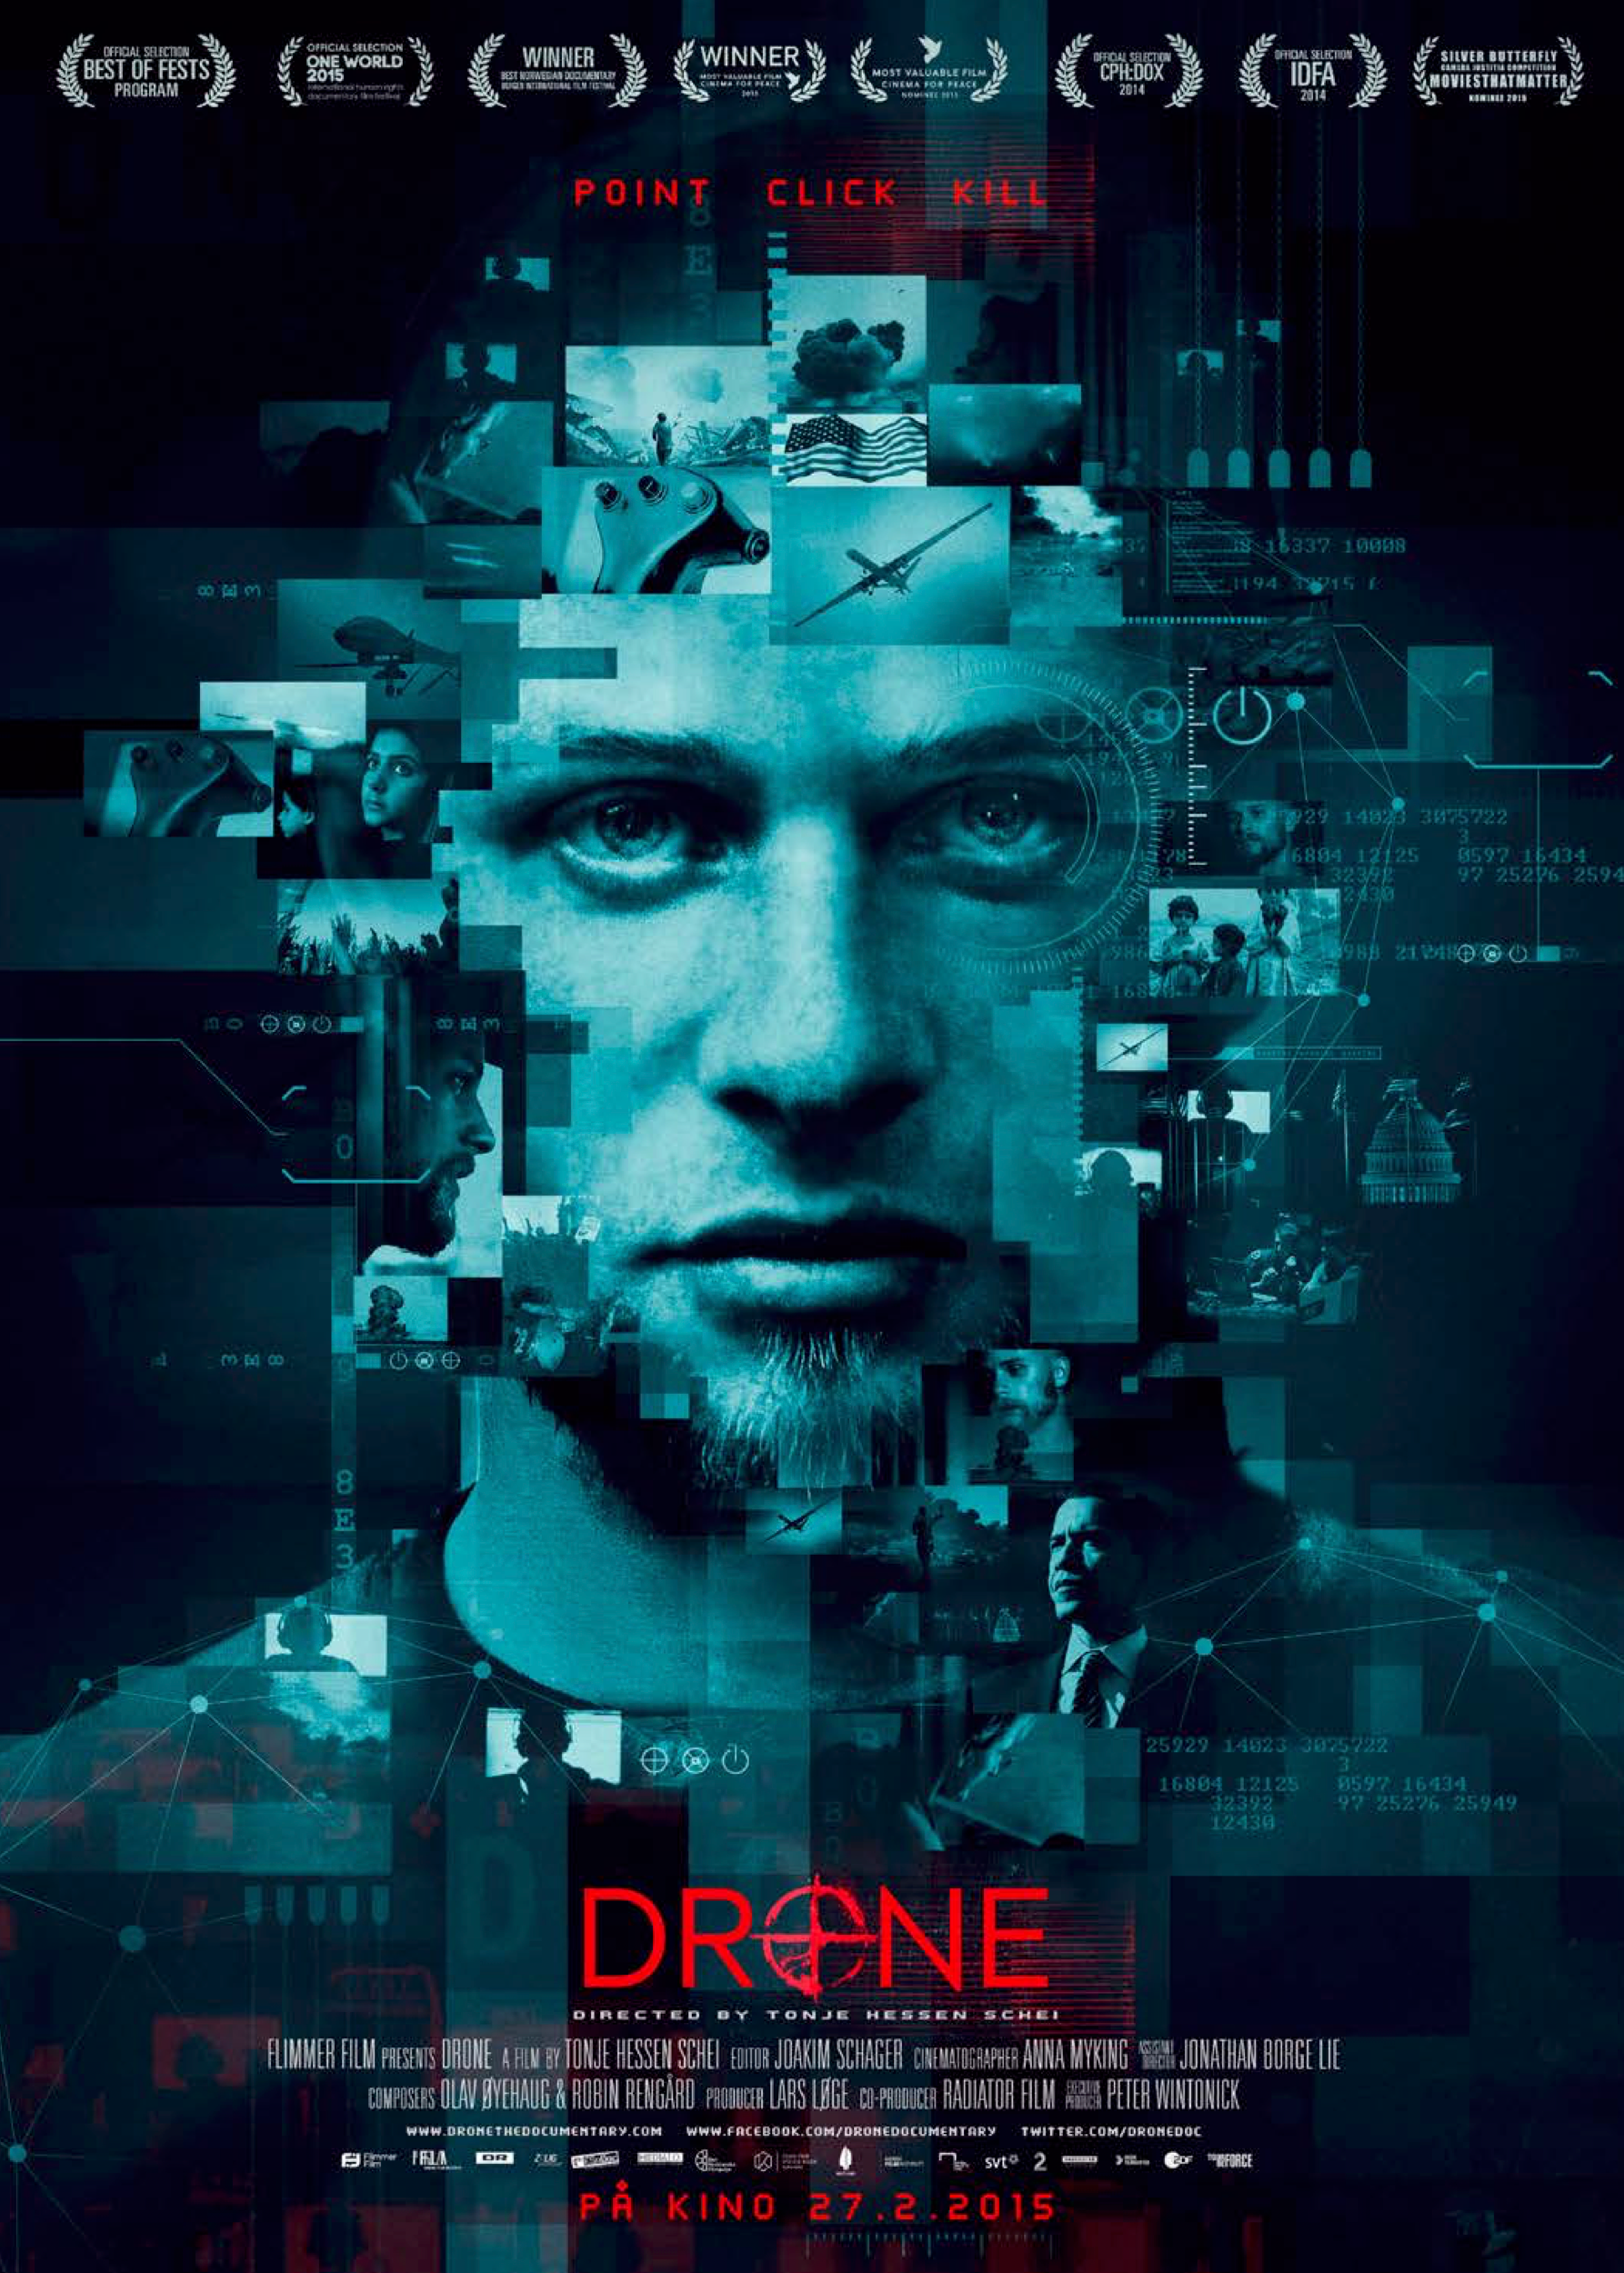 """Drone - 2015, Norway/Pakistan/USA, 78/58 min, in English/Urdu/Pashto with subtitlesFollowing people on both sides of the drone technology, Drone covers diverse and integral ground from the recruitment of young pilots at gaming conventions and the re-definition of """"going to war"""", to the moral stance of engineers behind the technology, the world leaders giving the secret """"green light"""" to engage in the biggest targeted killing program in history, and the people willing to stand up against the violations of civil liberties and fight for transparency, accountability and justice."""